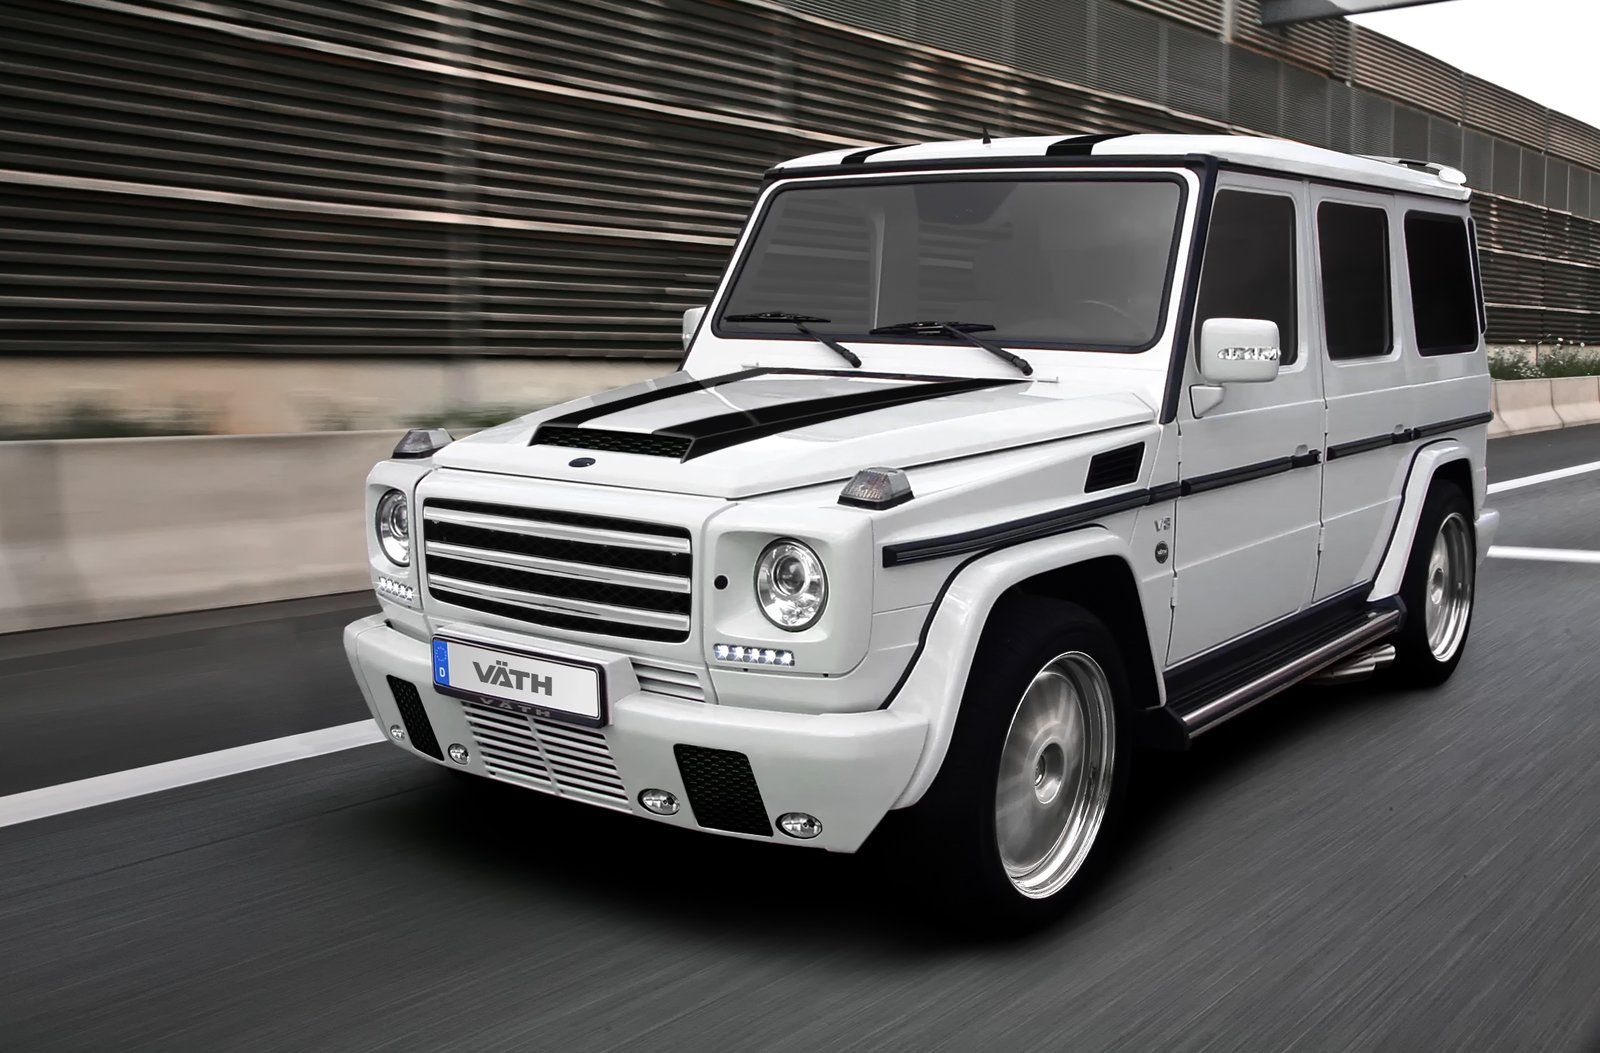 Tuning wald international mercedes benz e class estate w211 - Tuning V Th G55 Amg A Superlative V58k With 680 Hp